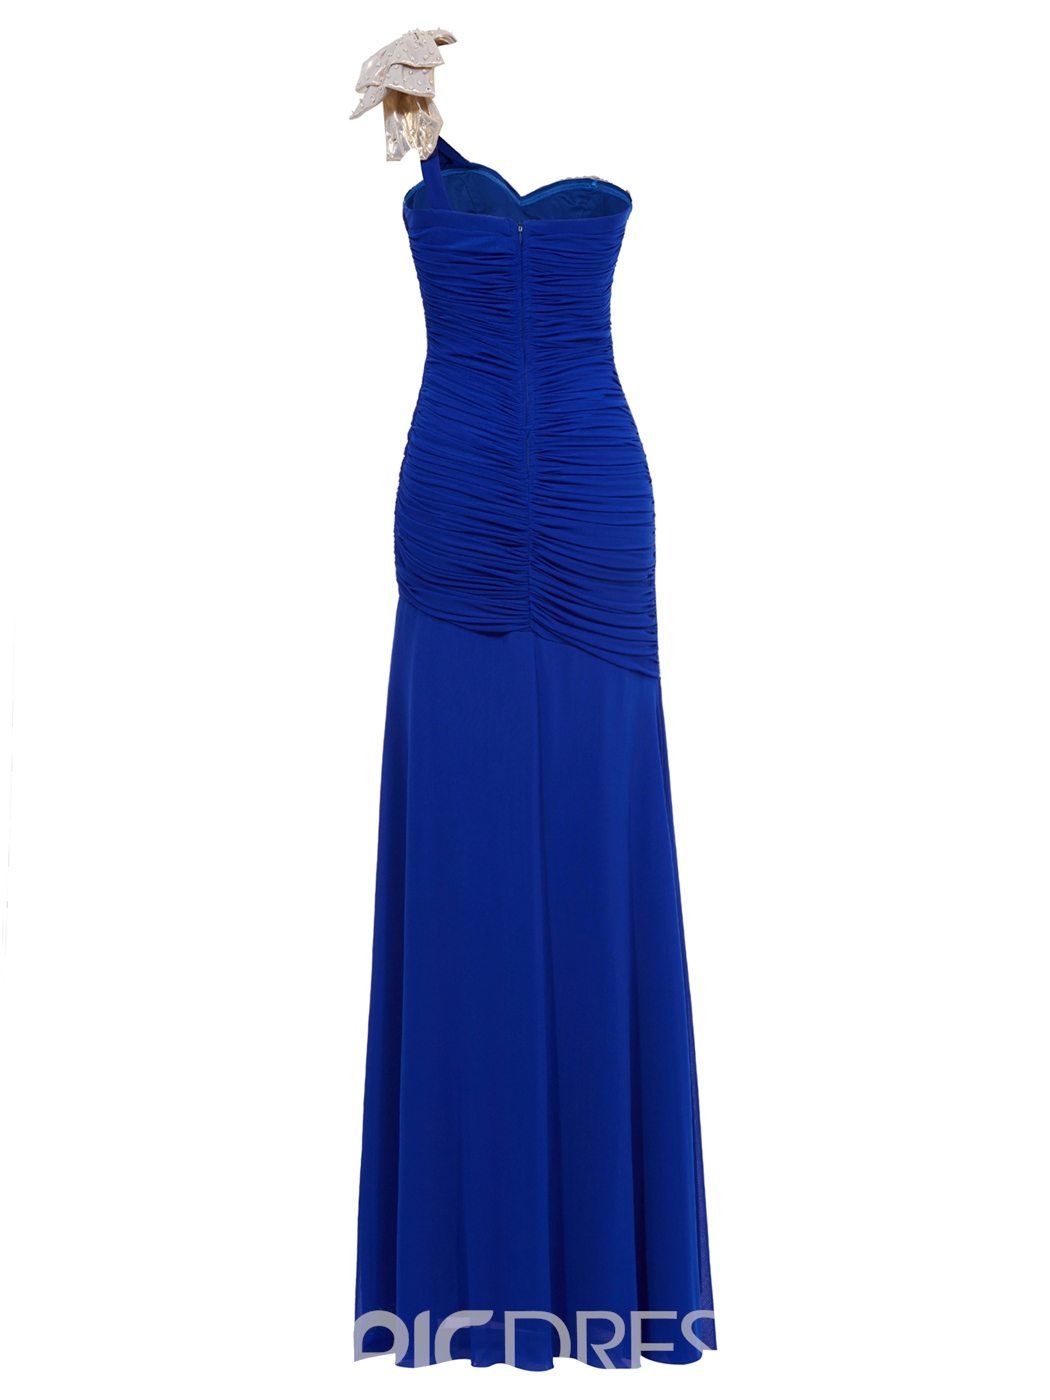 Ericdress Beading Pleated Chiffon Sheath/Column Evening Dress